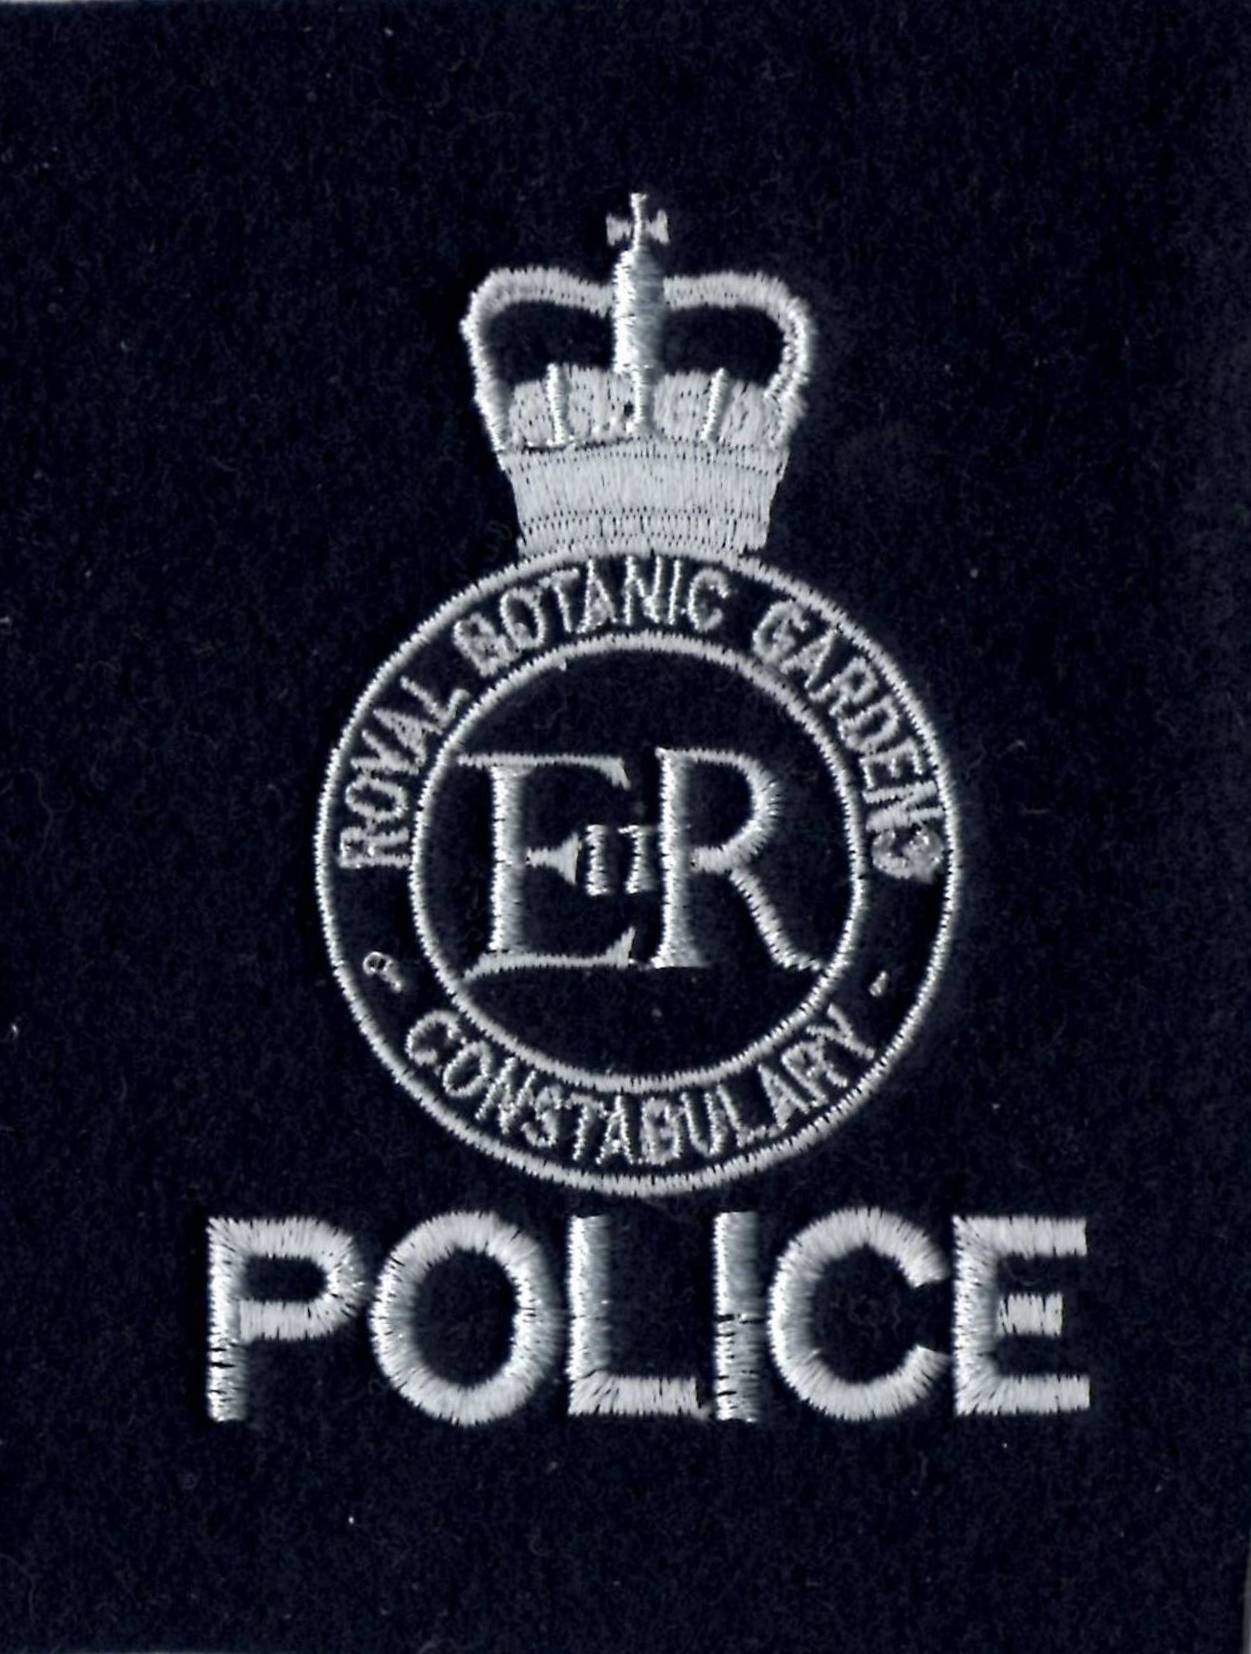 Royal Botanic Gardens Constabulary